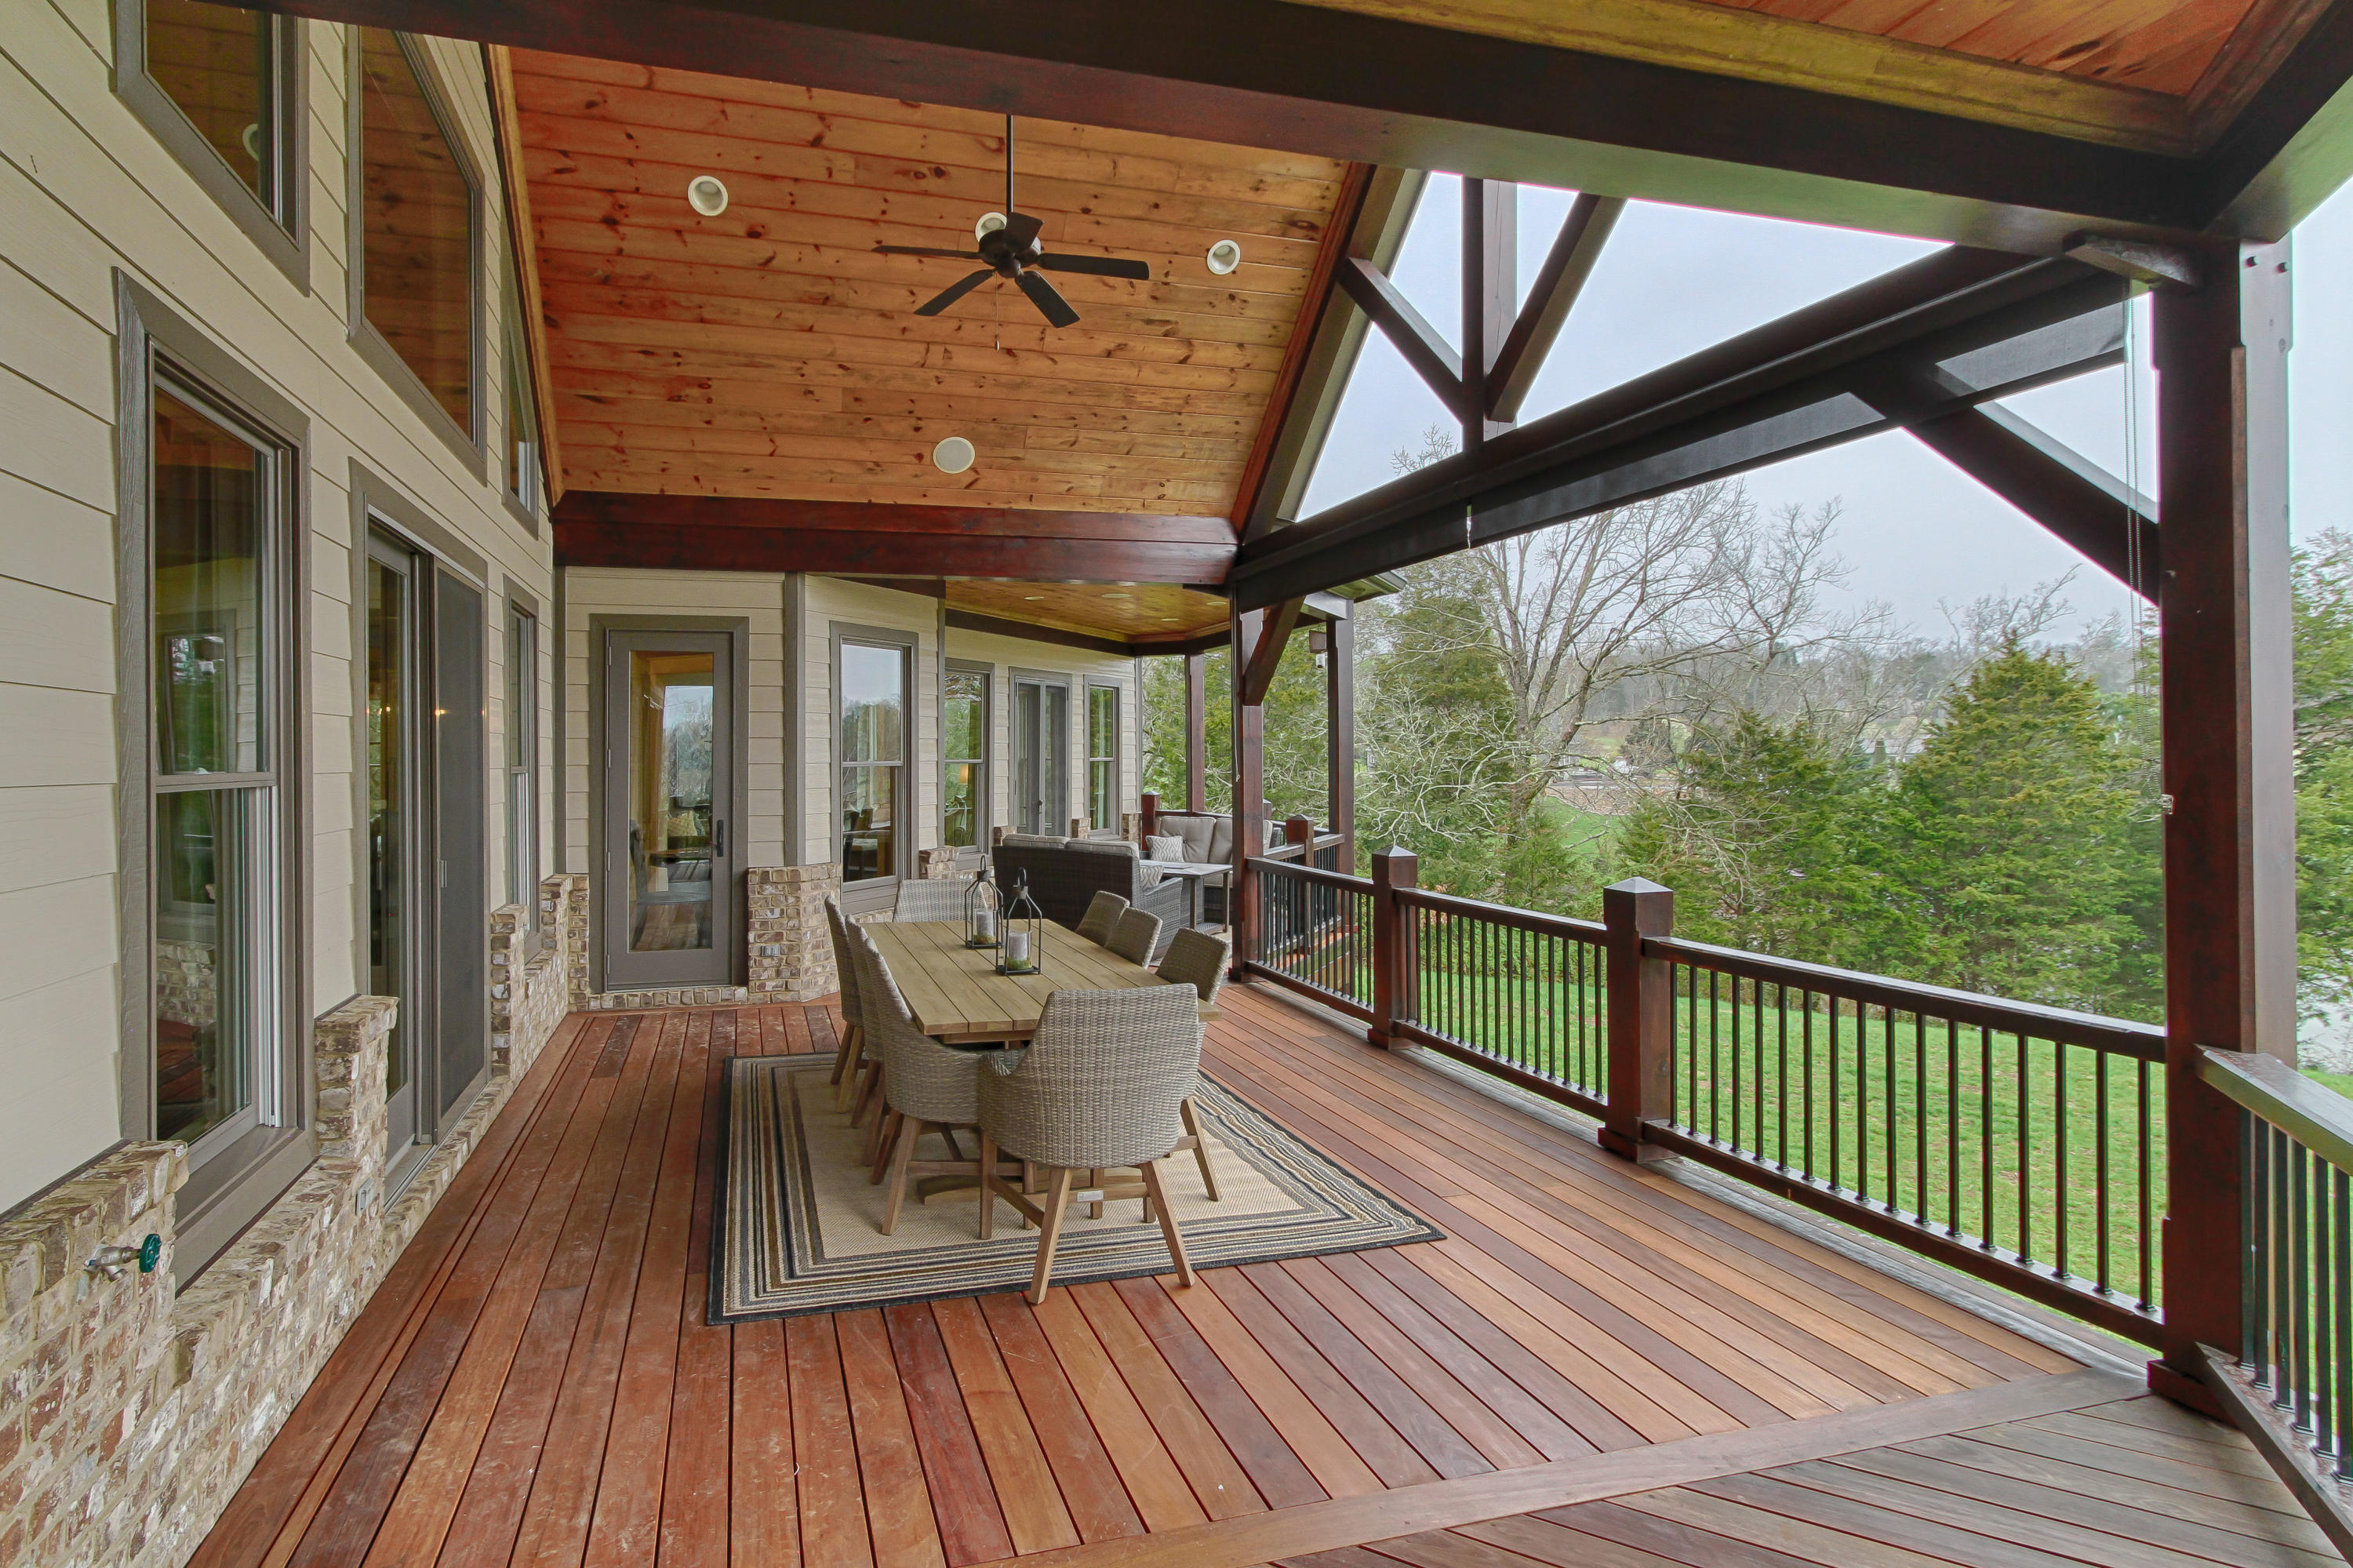 3340 Lowes Ferry Rd: